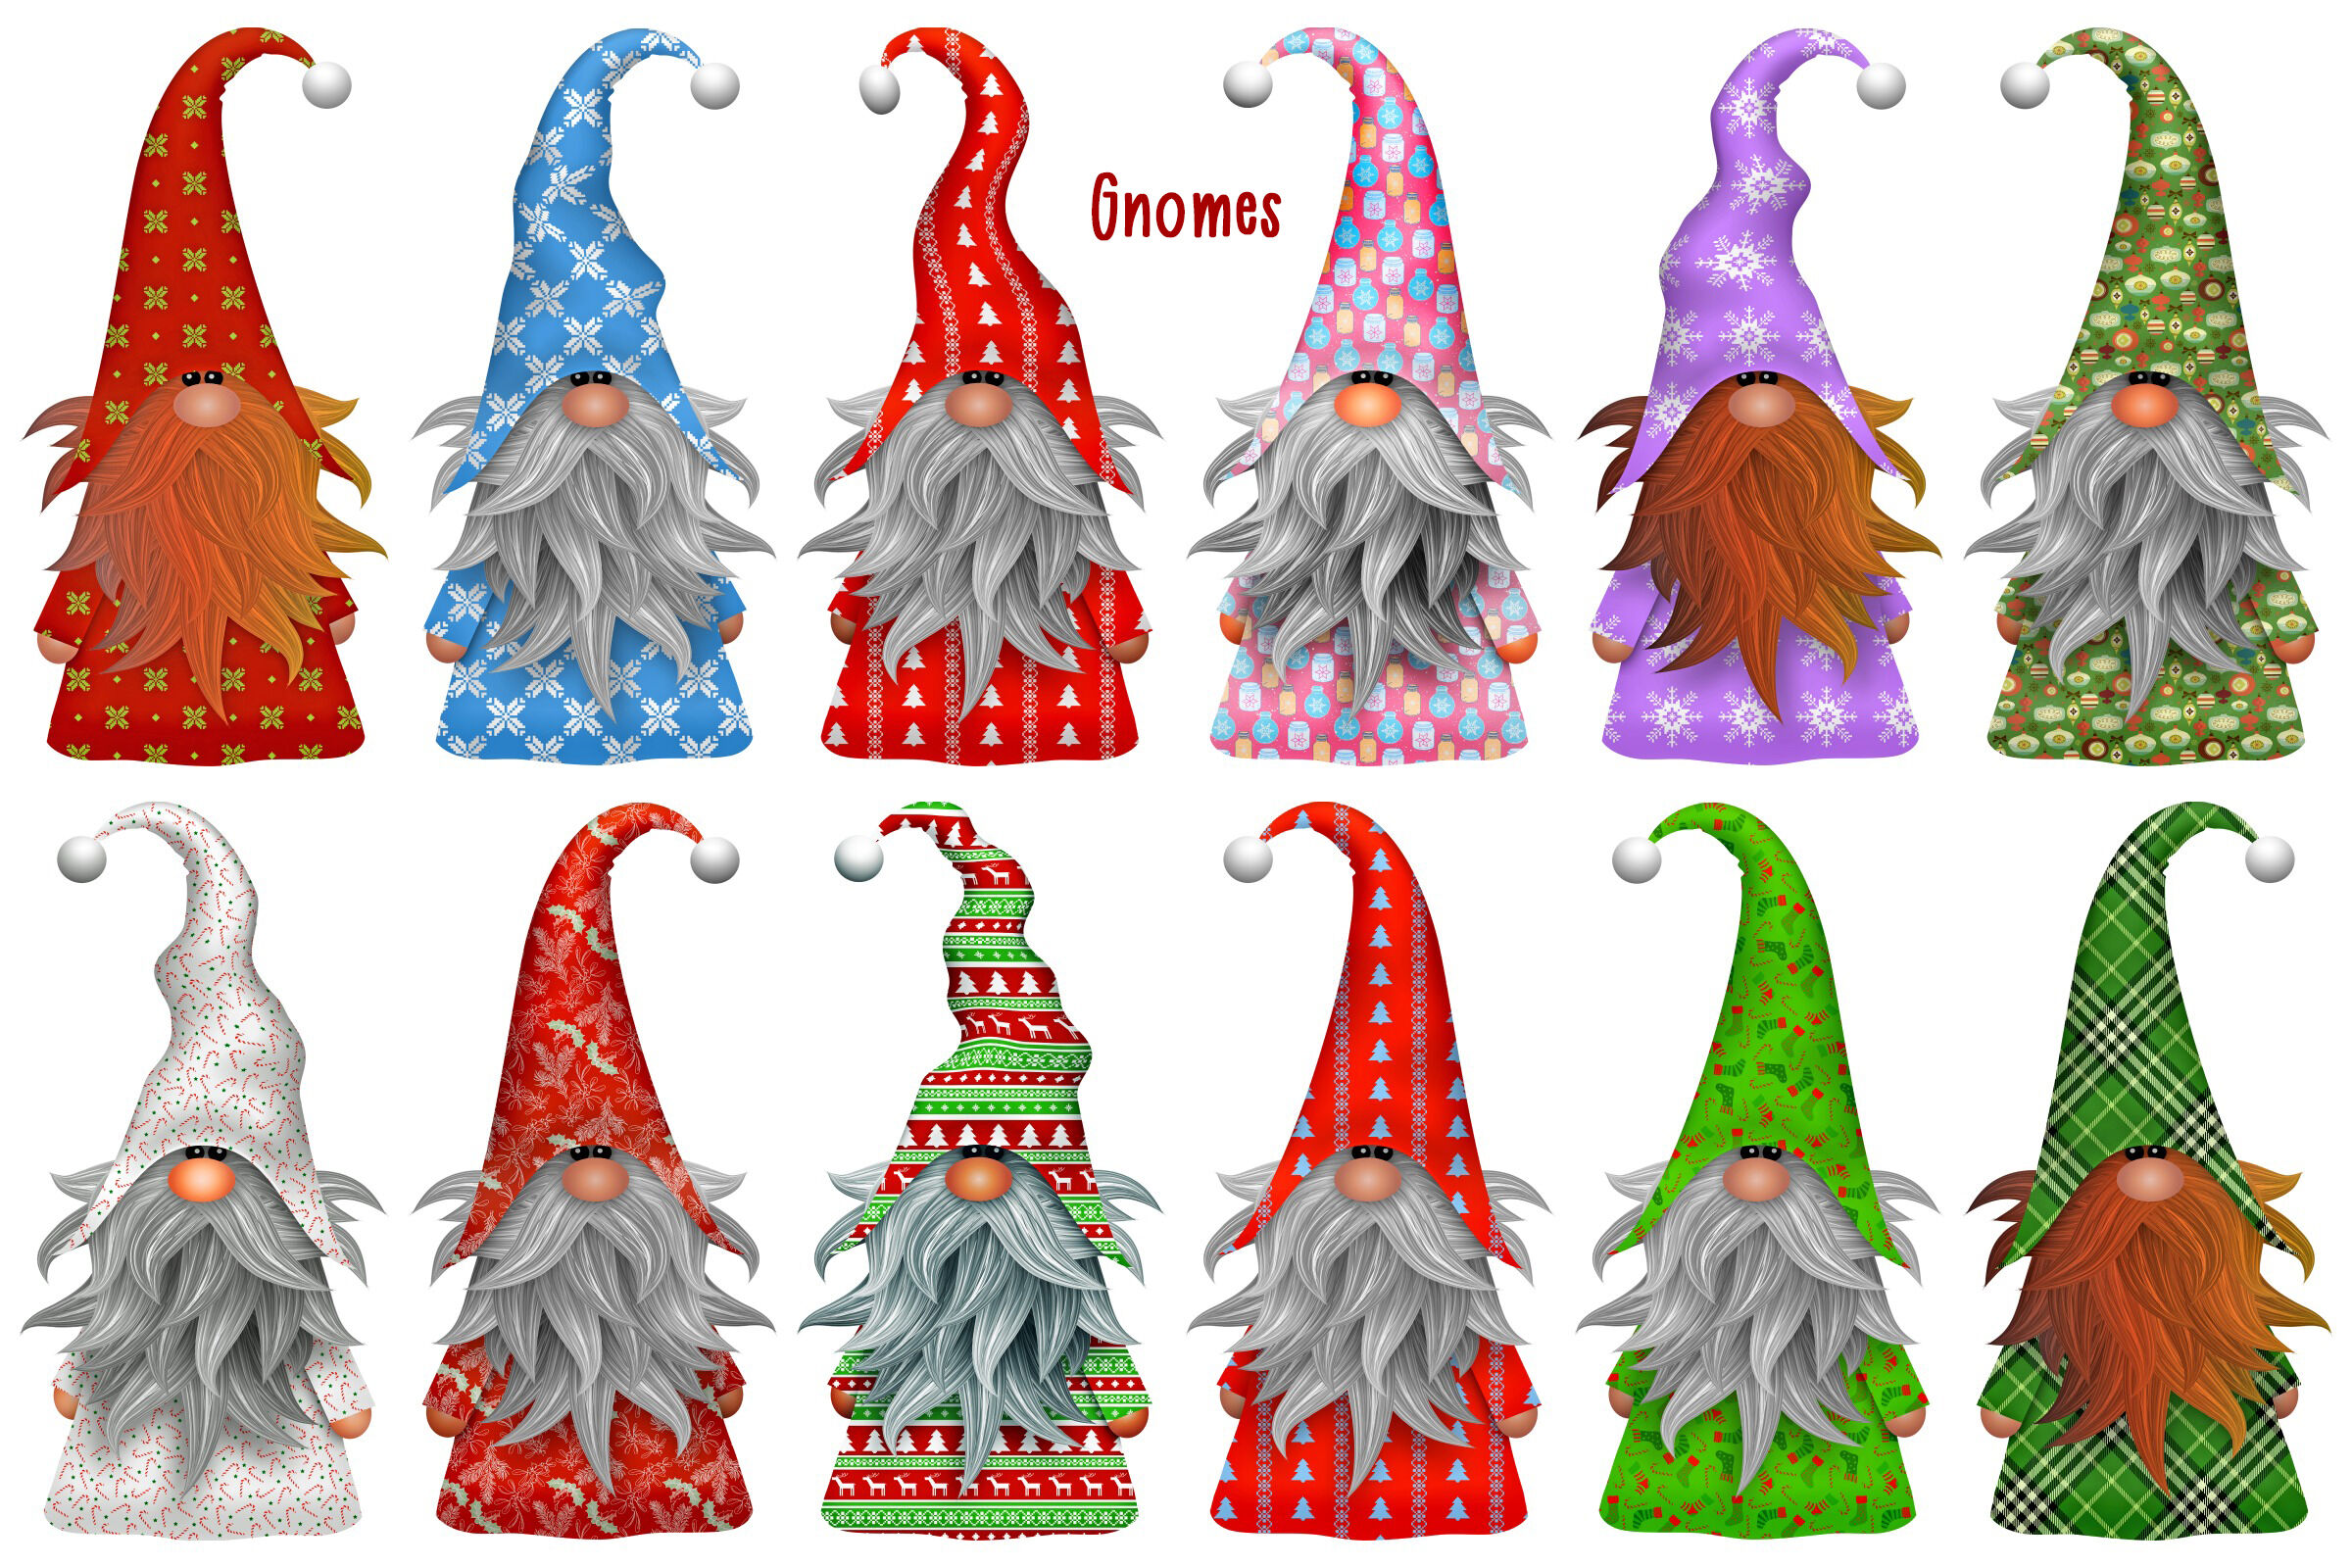 Christmas Gnomes Clipart.Christmas Gnomes And Scenes Clip Art By Me And Amelie